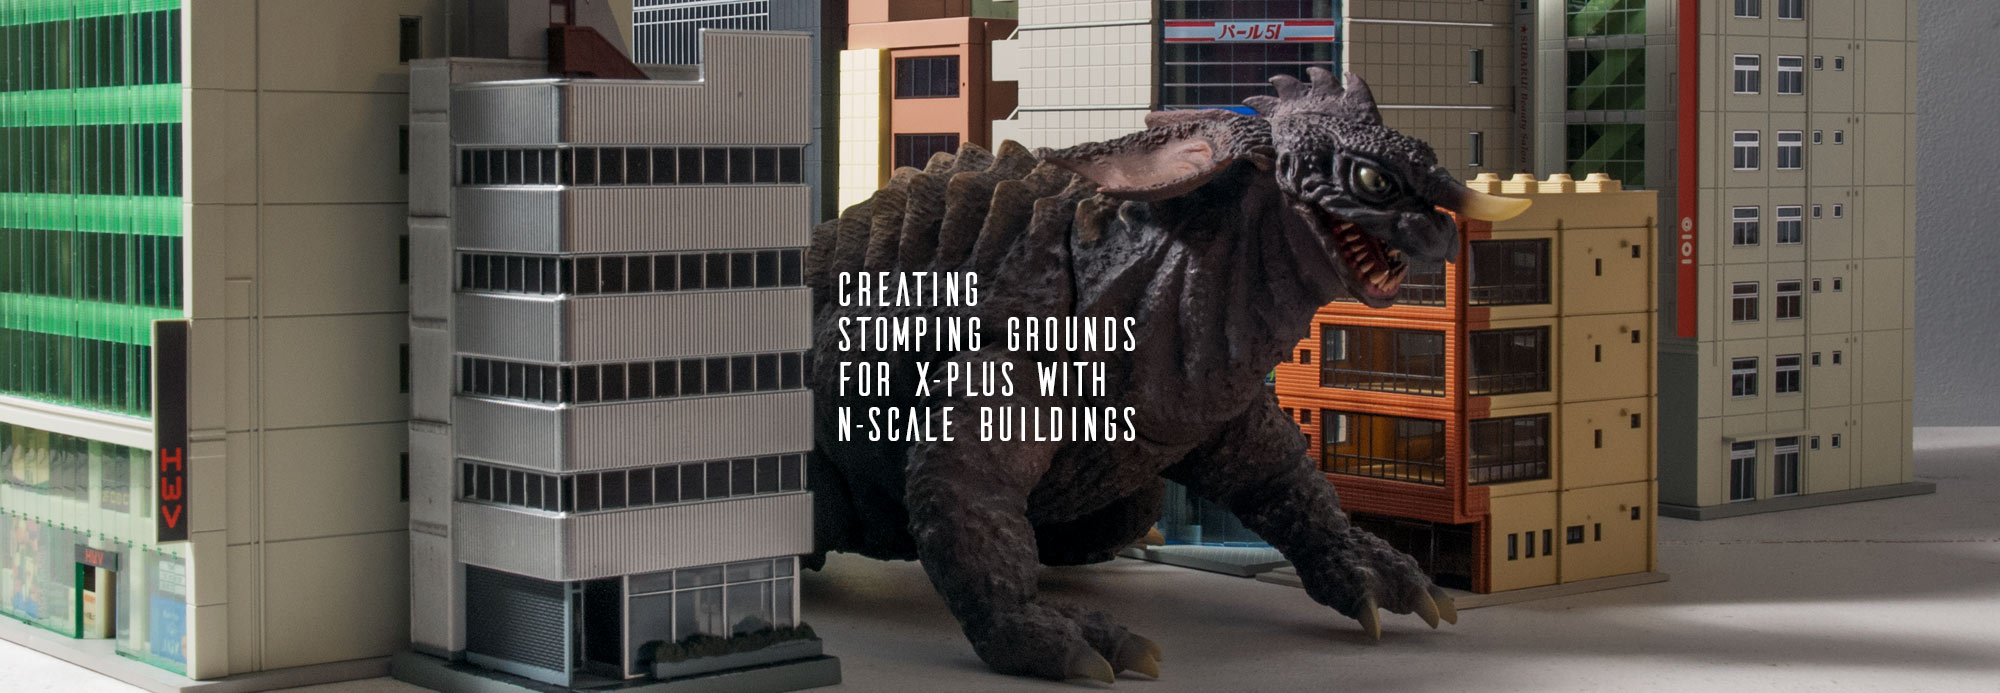 Creating stomping grounds for X-Plus with N-Scale Buildings.